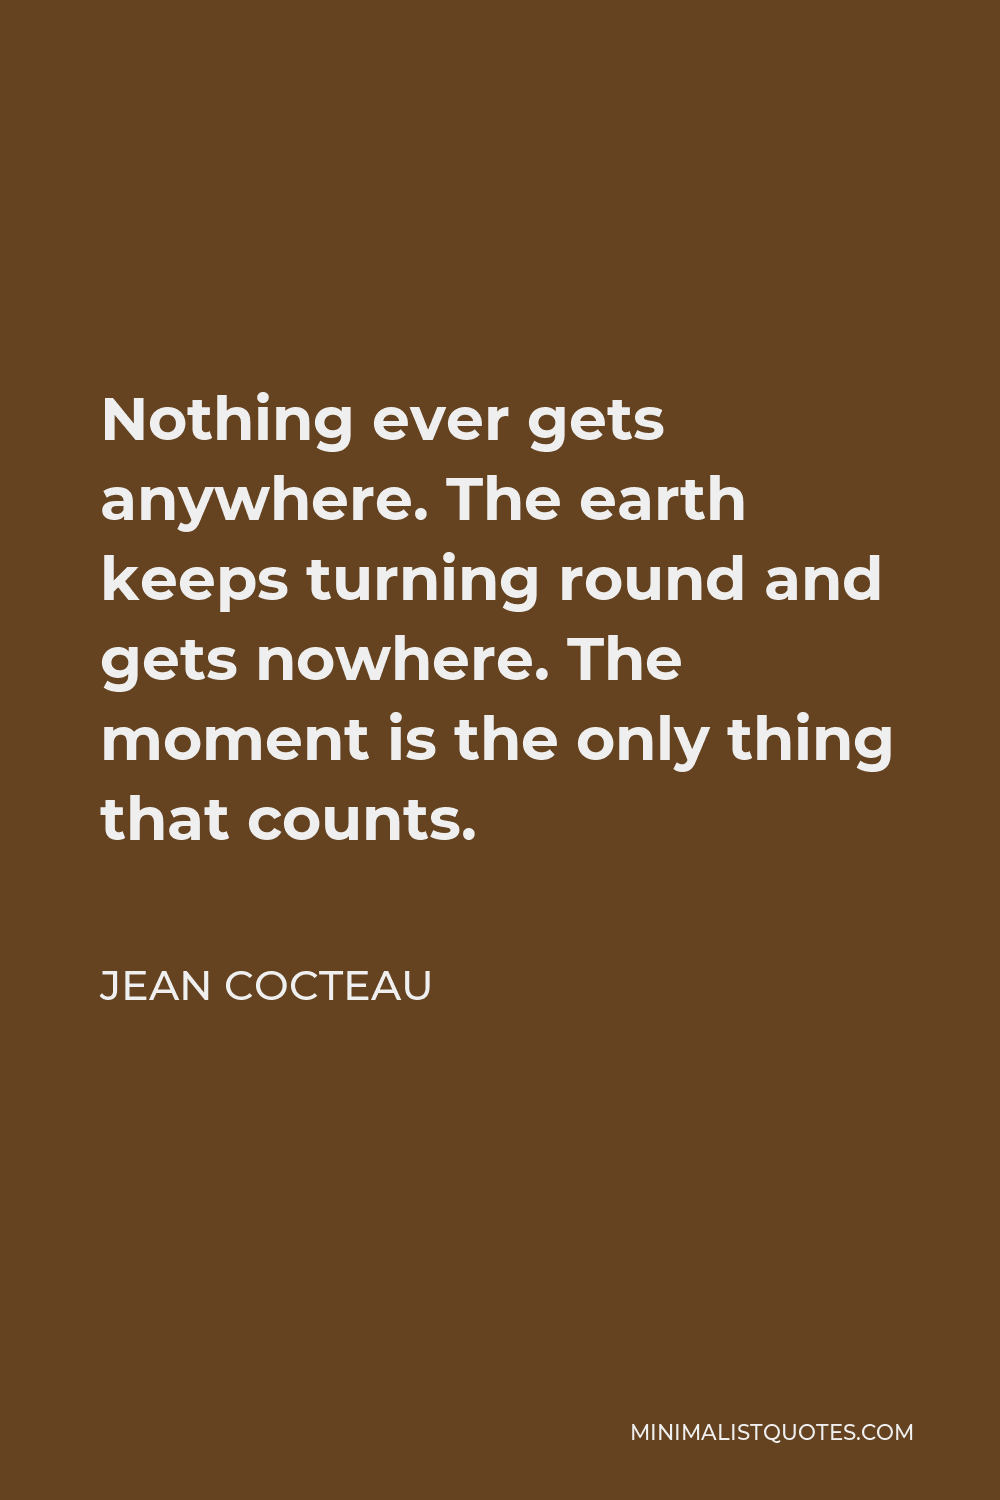 Jean Cocteau Quote - Nothing ever gets anywhere. The earth keeps turning round and gets nowhere. The moment is the only thing that counts.